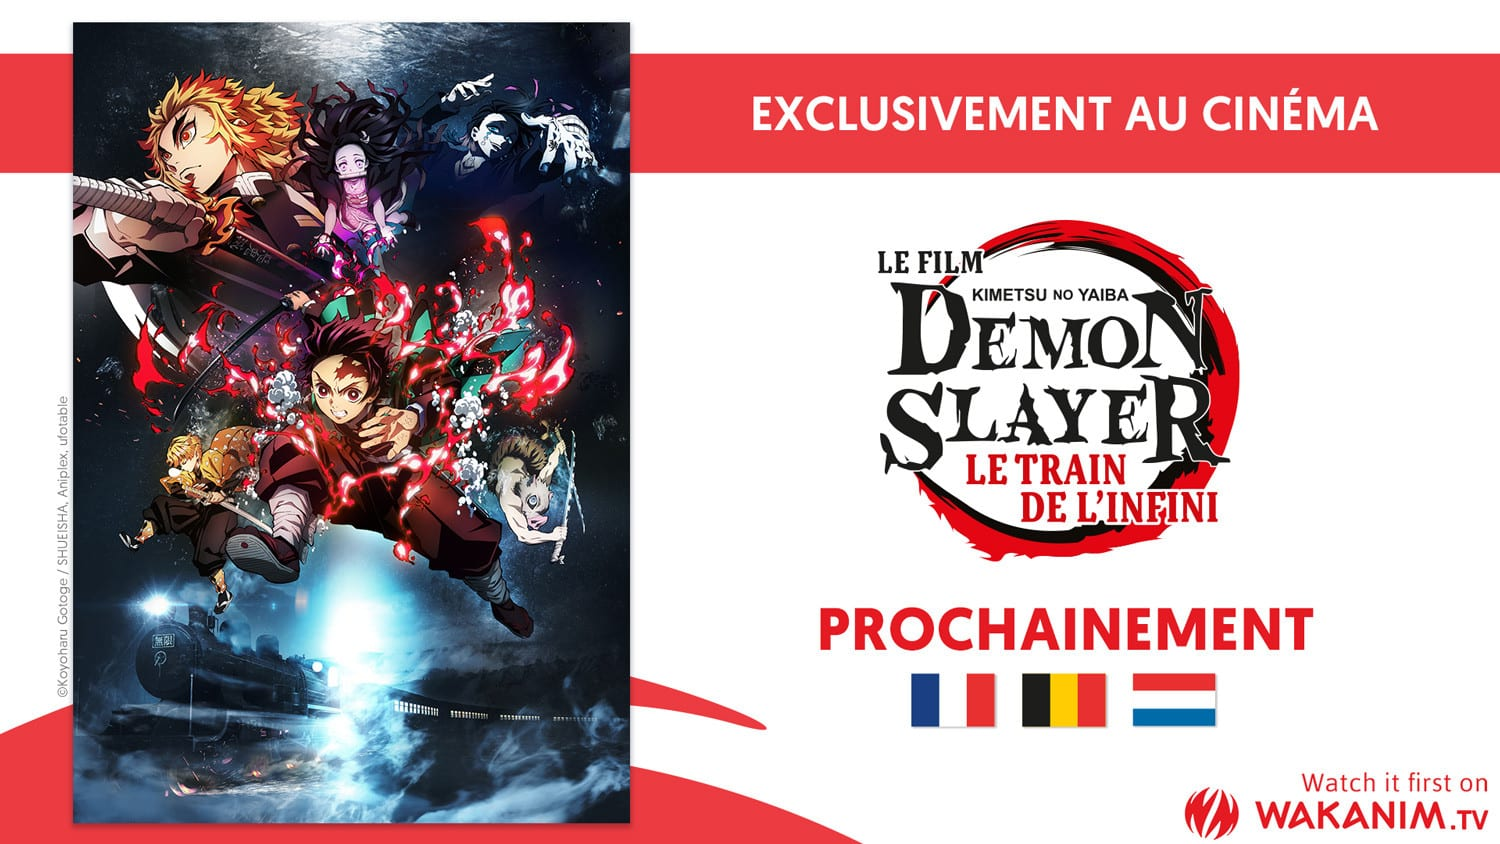 Annonce du film demon slayer le train de l'infini en France par Wakanim